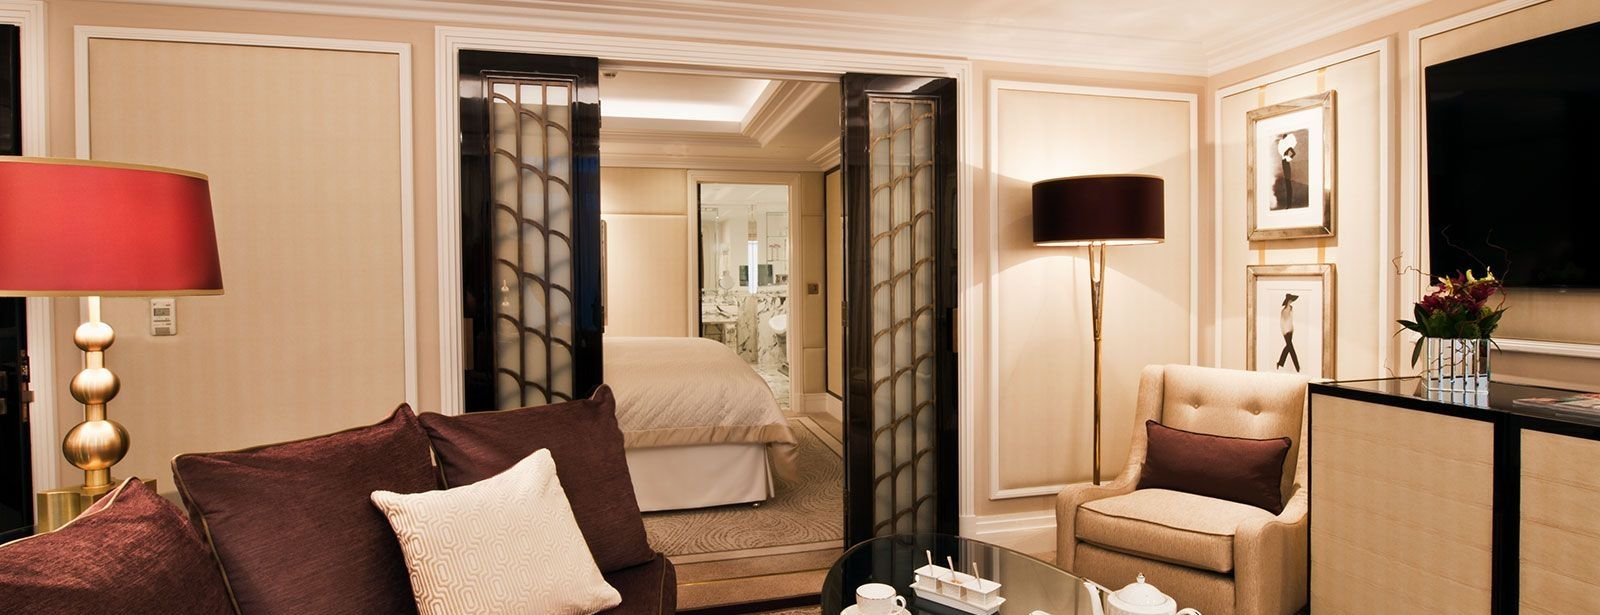 One Bedroom Suite at The Wellesley Knightsbridge